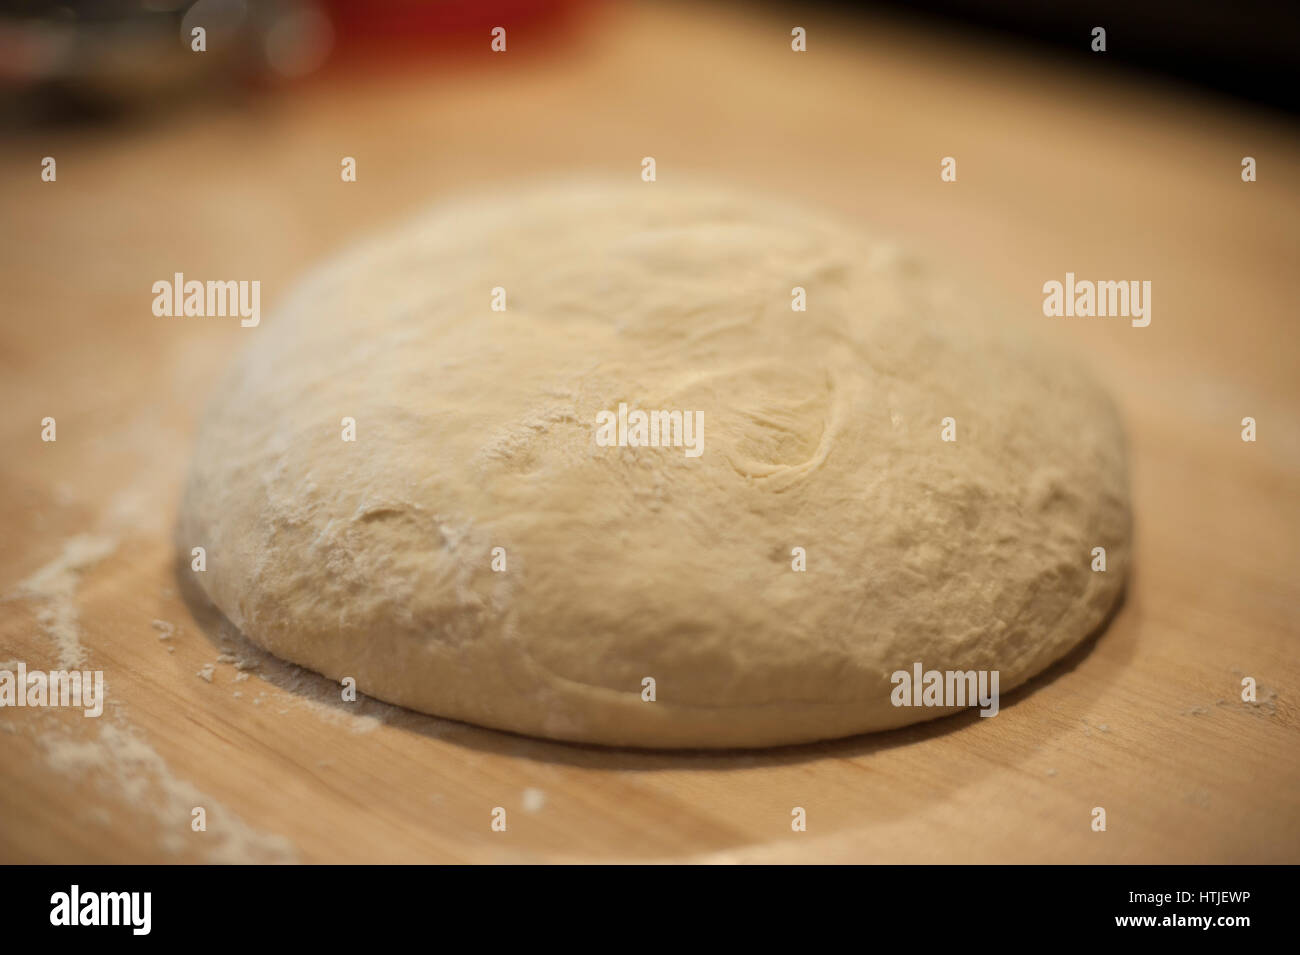 Focaccia Bread Dough in a Ball in Ready For Its First Rise - Stock Image